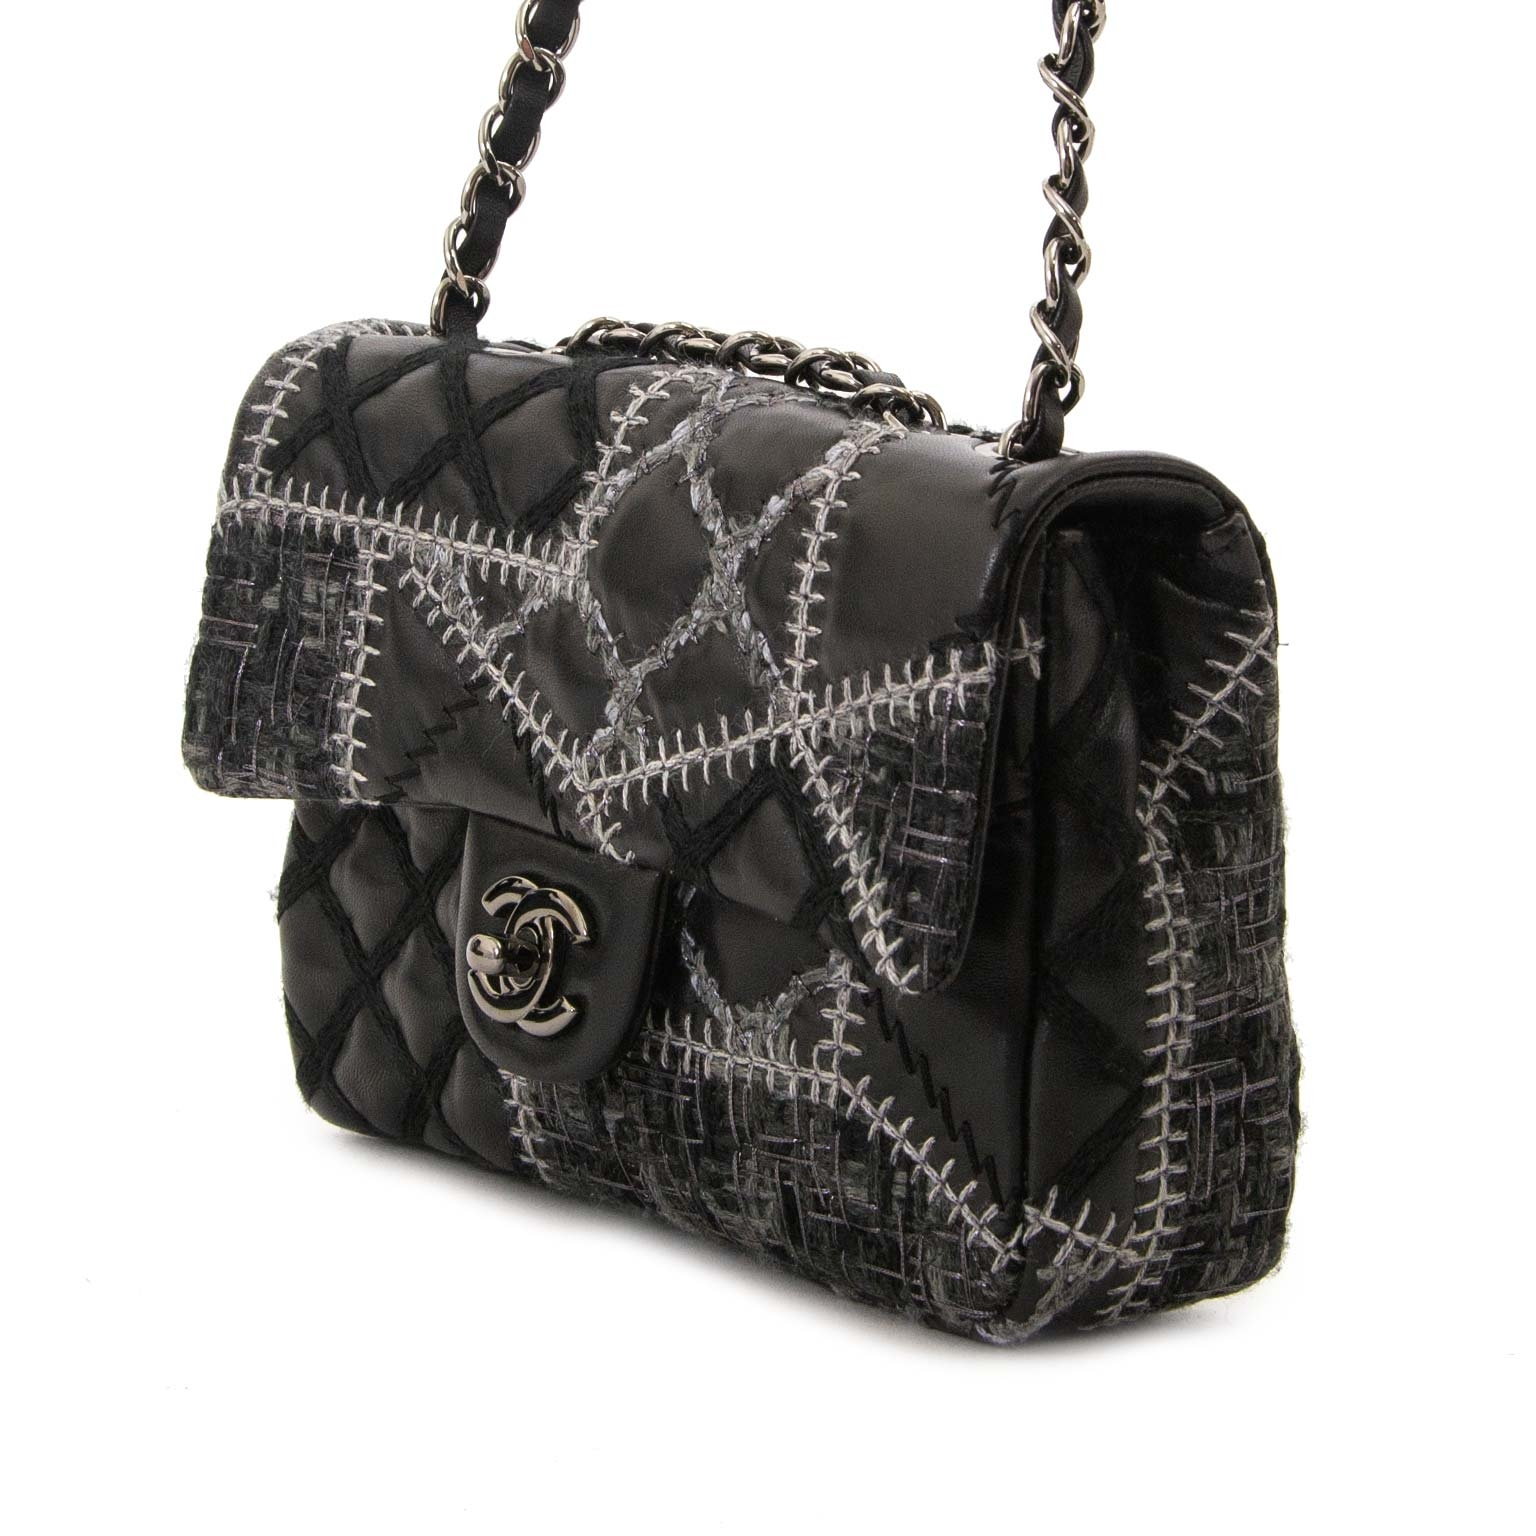 chanel quilted tweed leather patchwork stitch mini flap bag now for sale at labellov vintage fashion webshop belgium